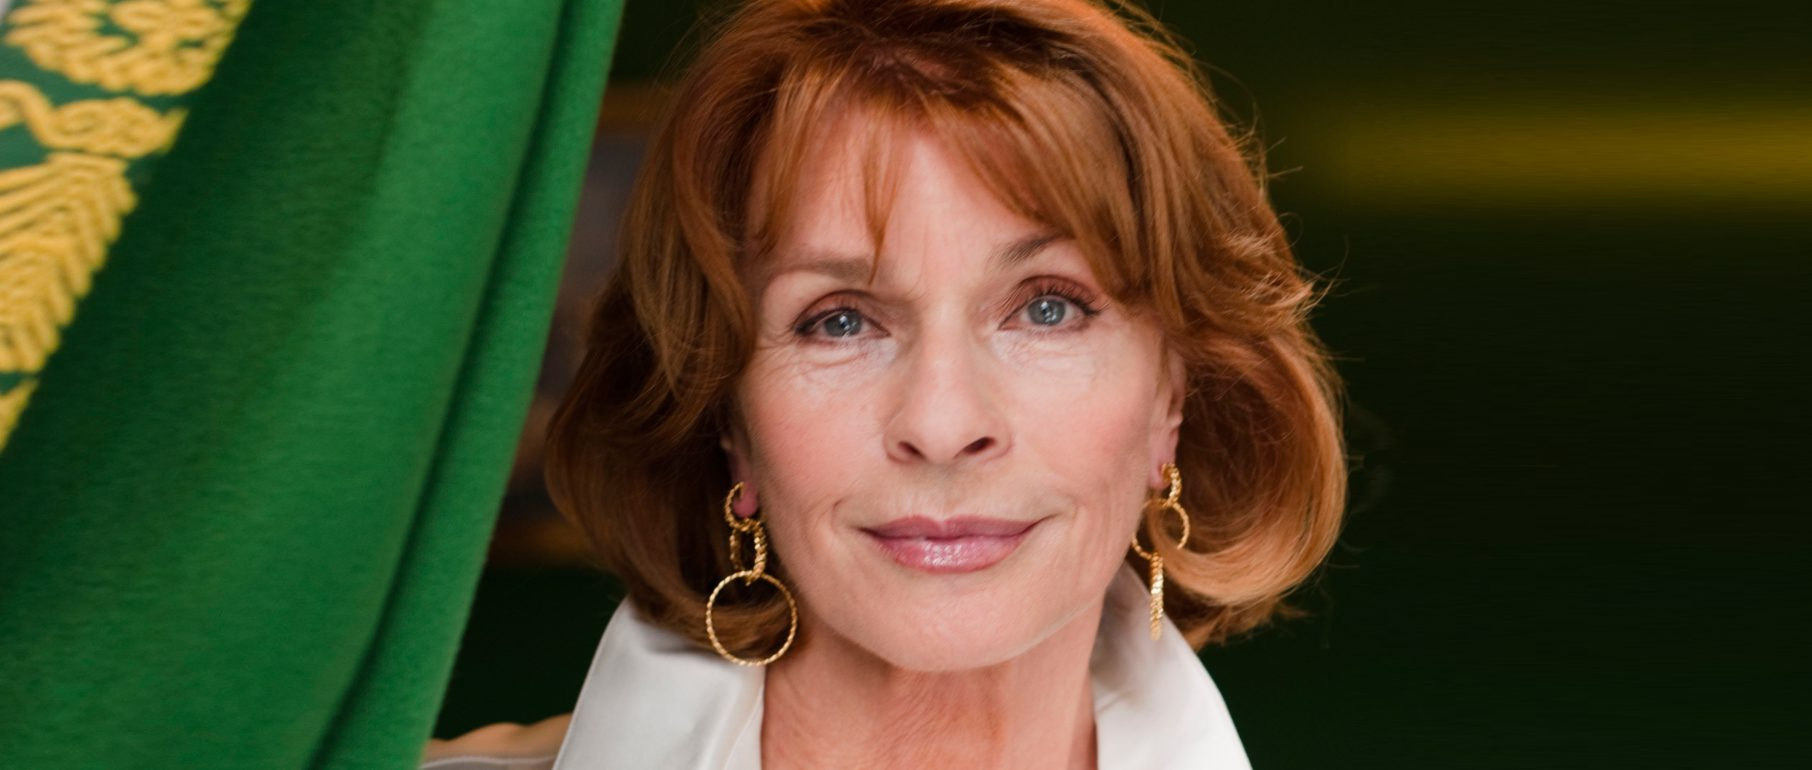 Senta Berger, Portrait